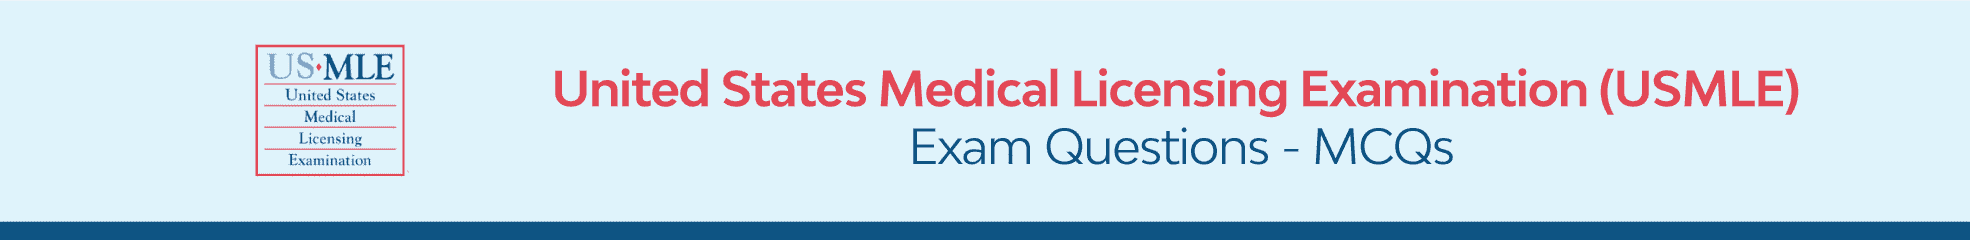 USMLE Exam Prep Packages